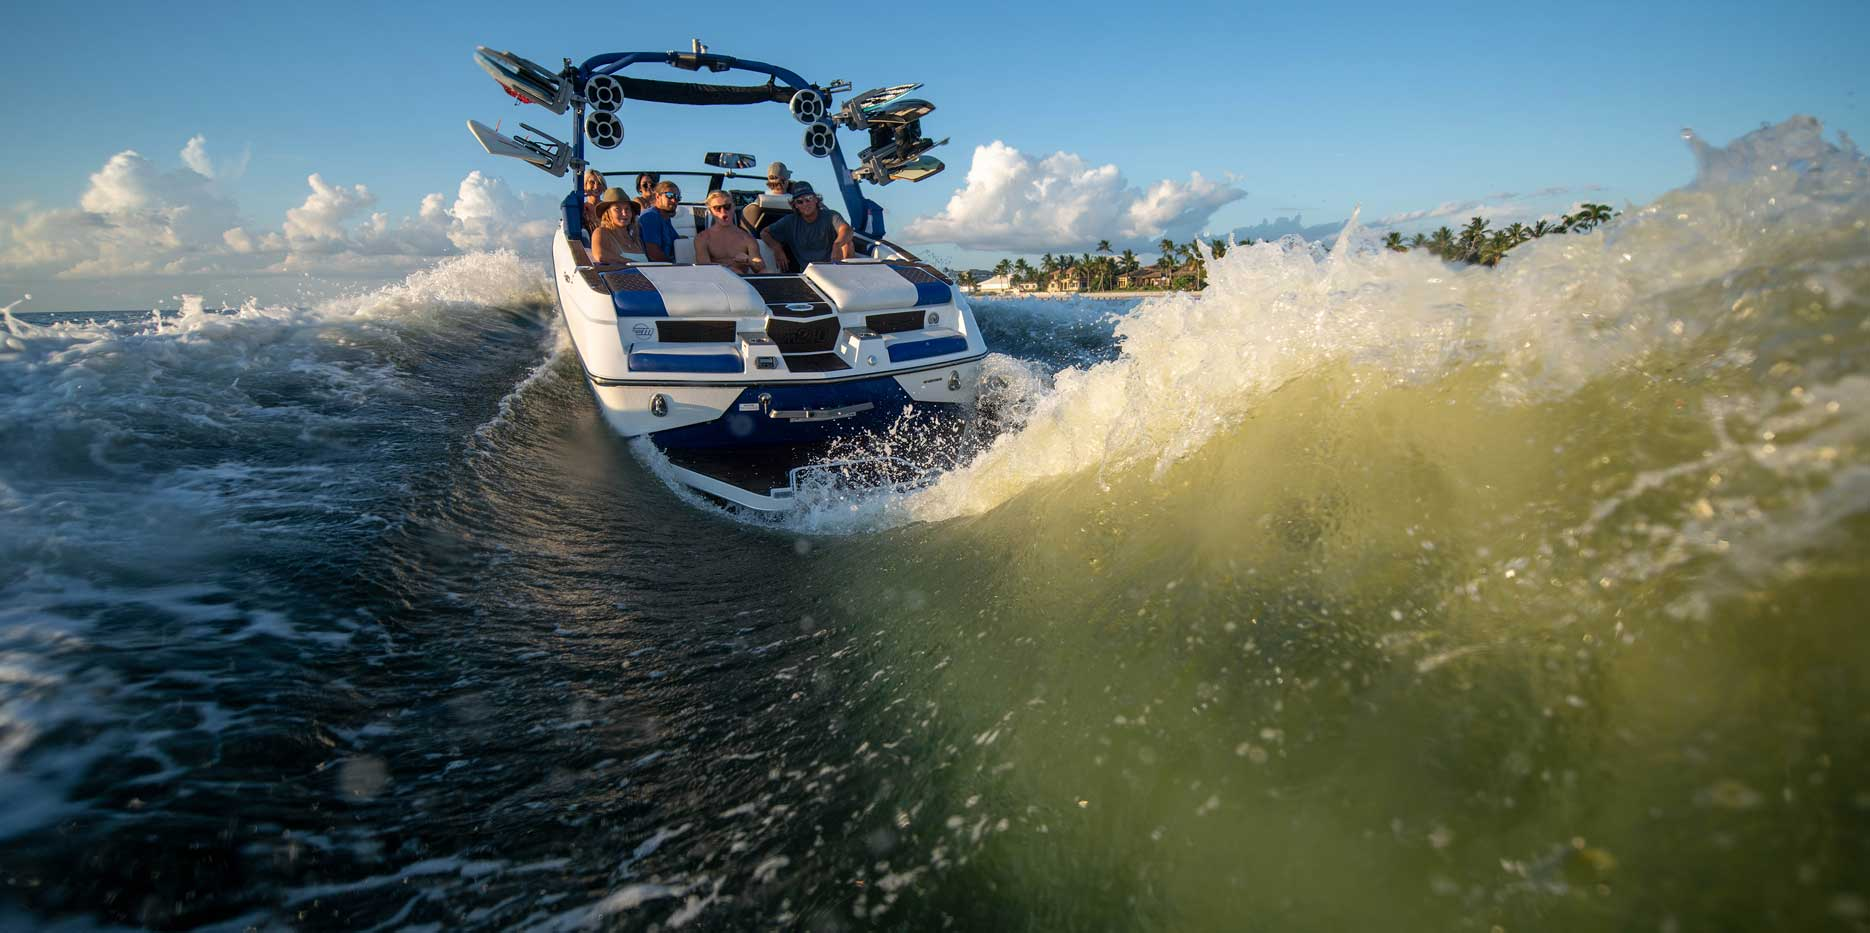 The M240 provides the best wakesurf performance